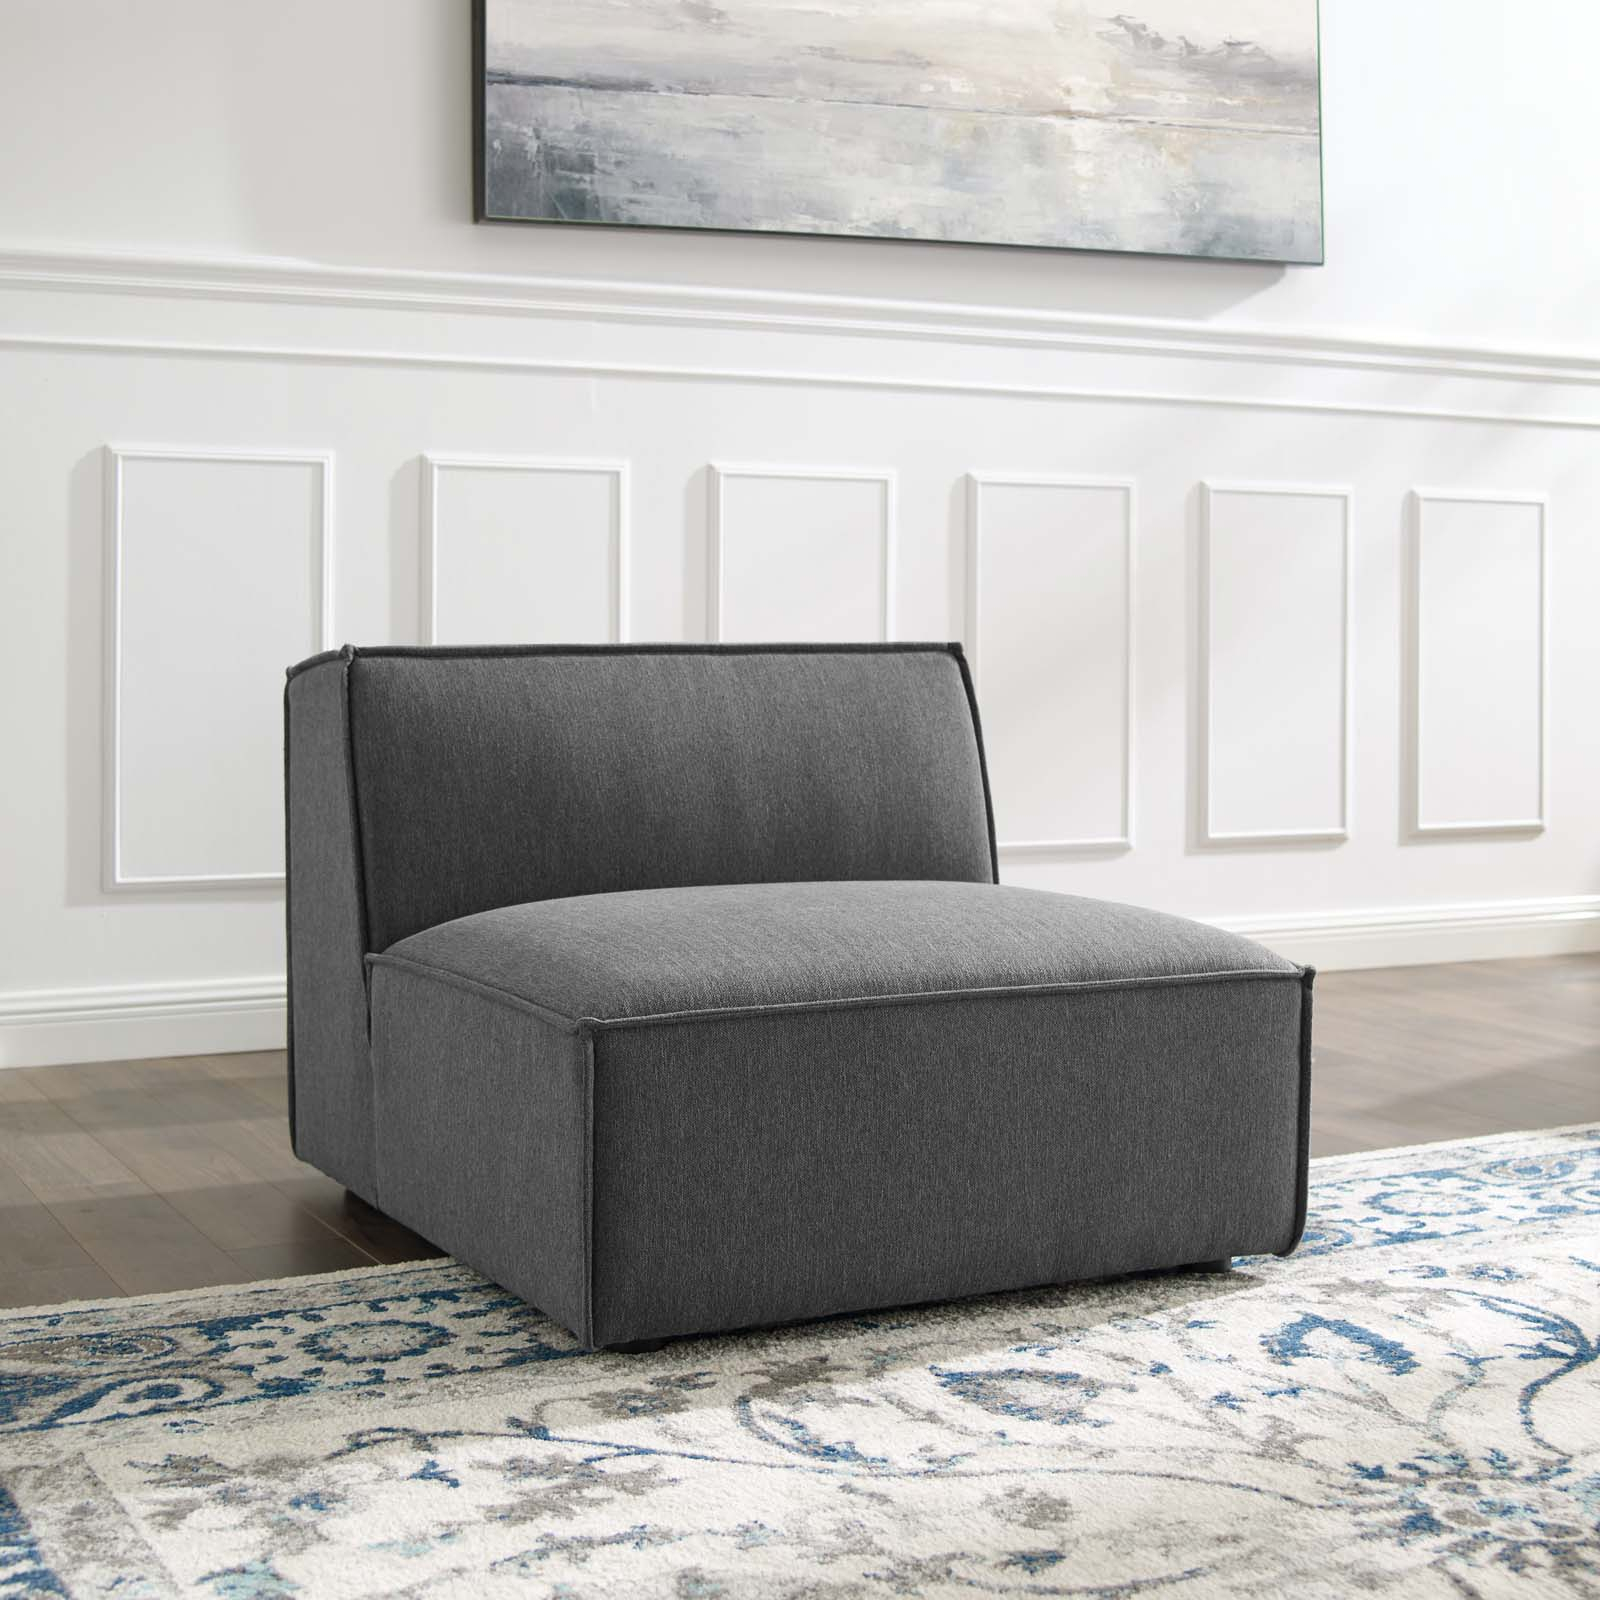 Modway Restore Sectional Sofa Armless Chair, Multiple Pertaining To Armless Sectional Sofas (View 1 of 15)